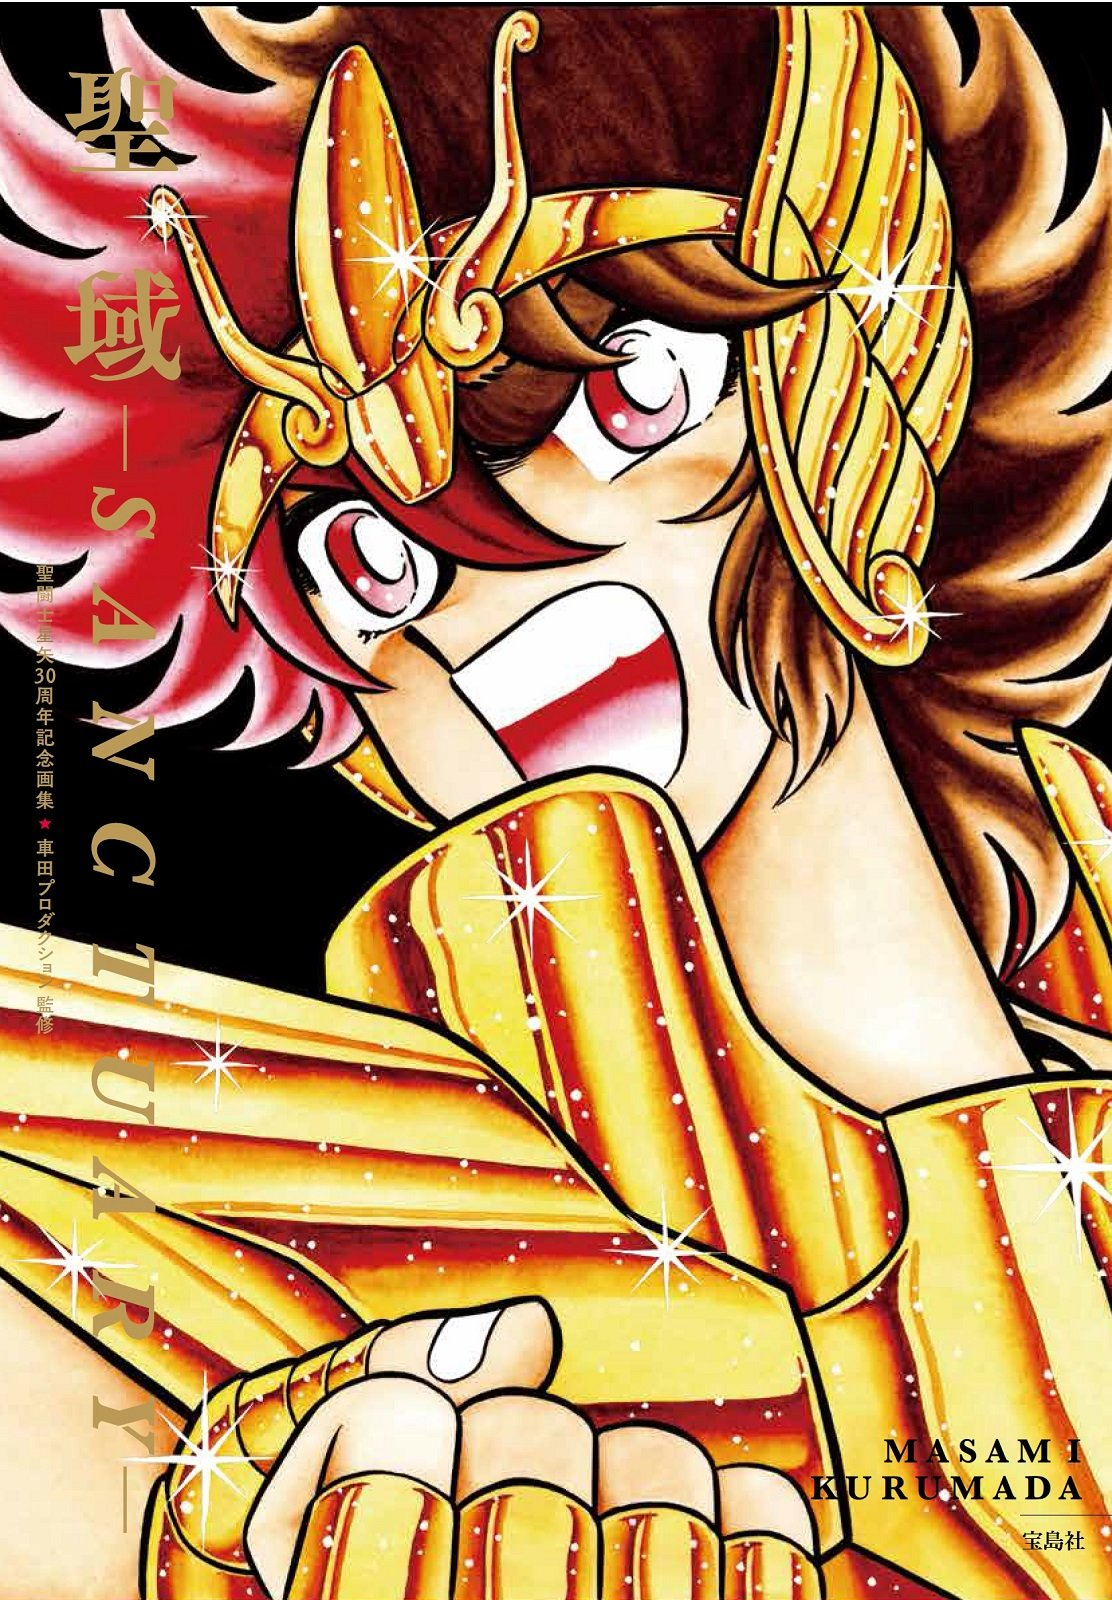 Art-book de Saint Seiya